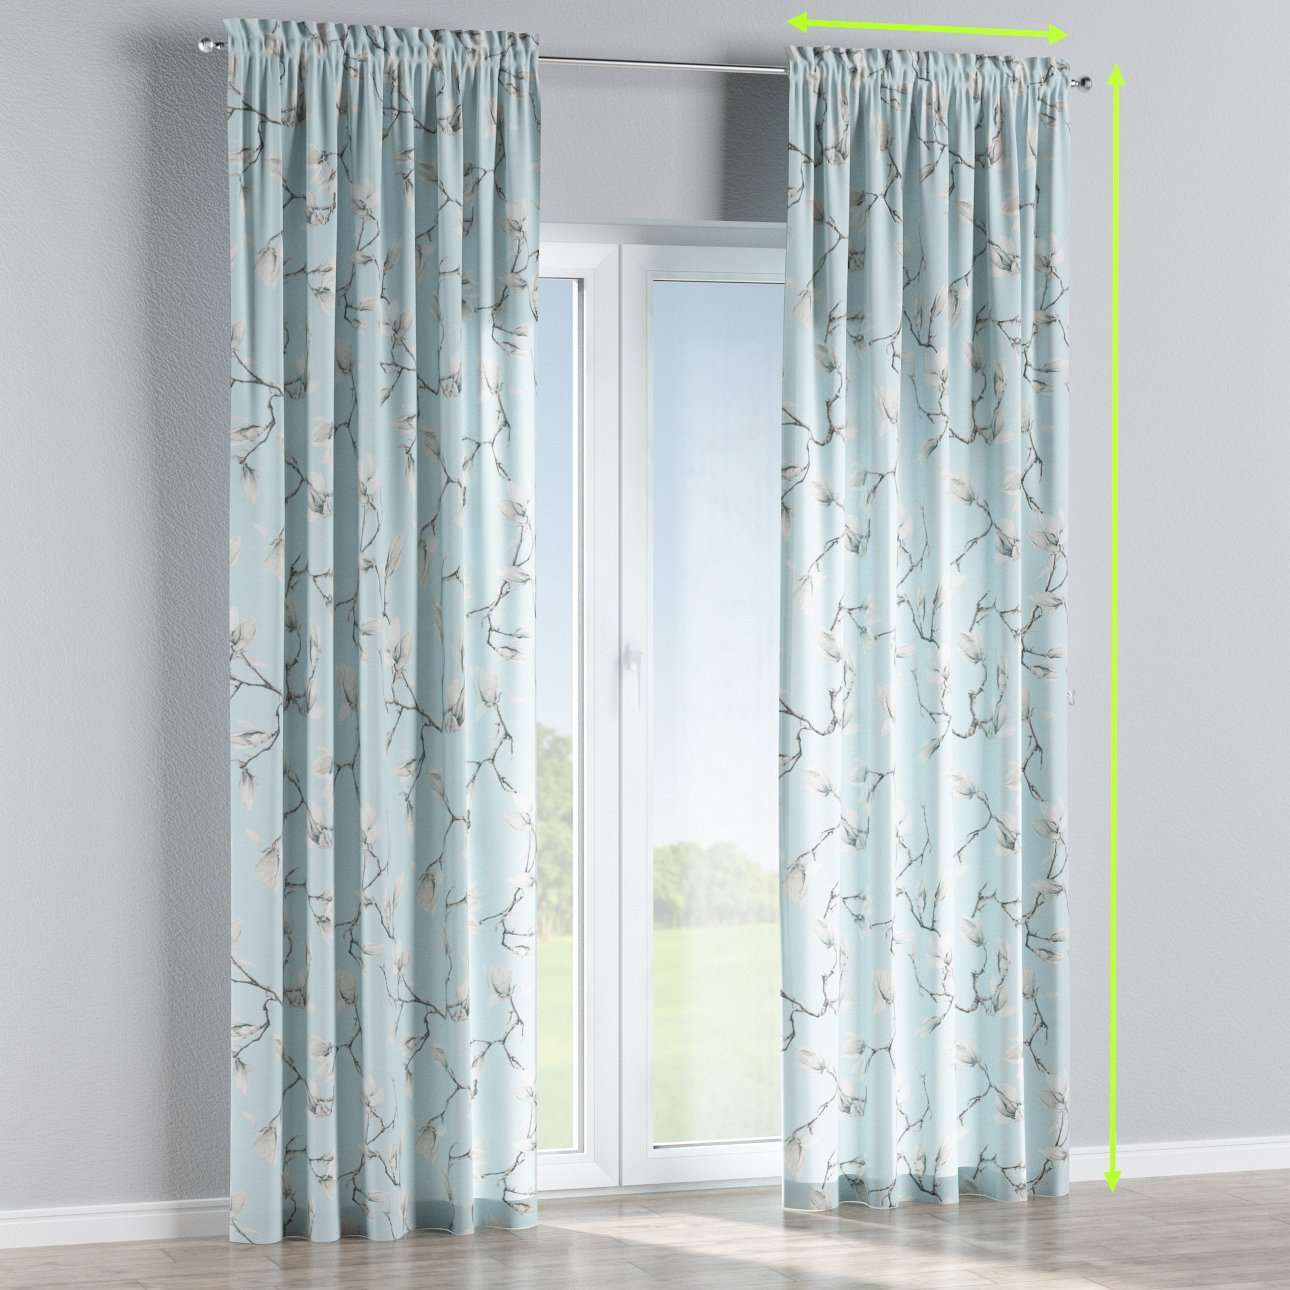 Slot and frill lined curtains in collection Flowers, fabric: 311-14